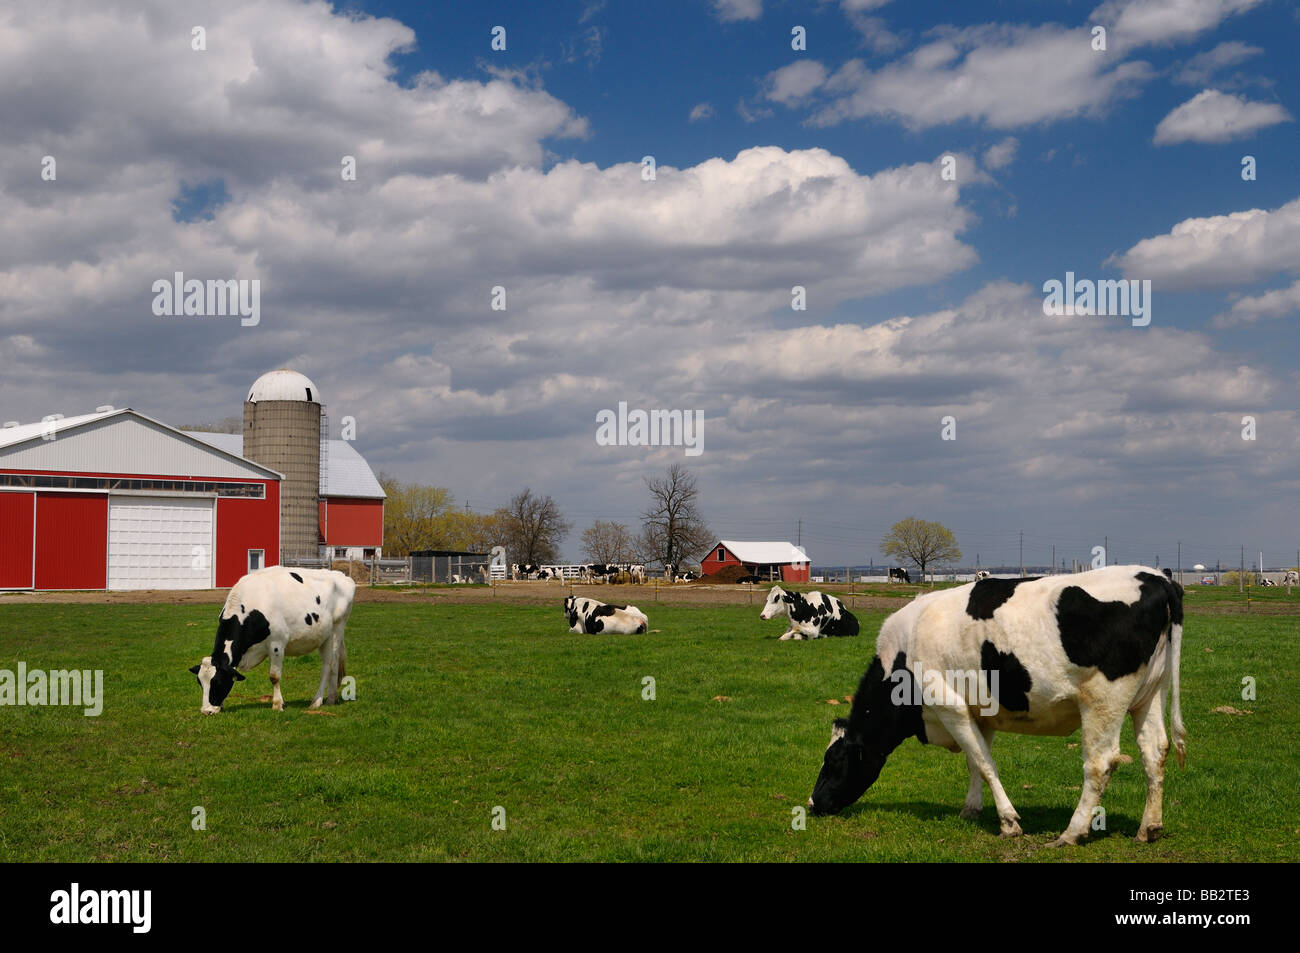 Cow on green pasture with red barn with grain silo royalty free stock - Herd Of Holstein Dairy Cows In A Farm Pasture With A Large Red Barn Vaughan Ontario